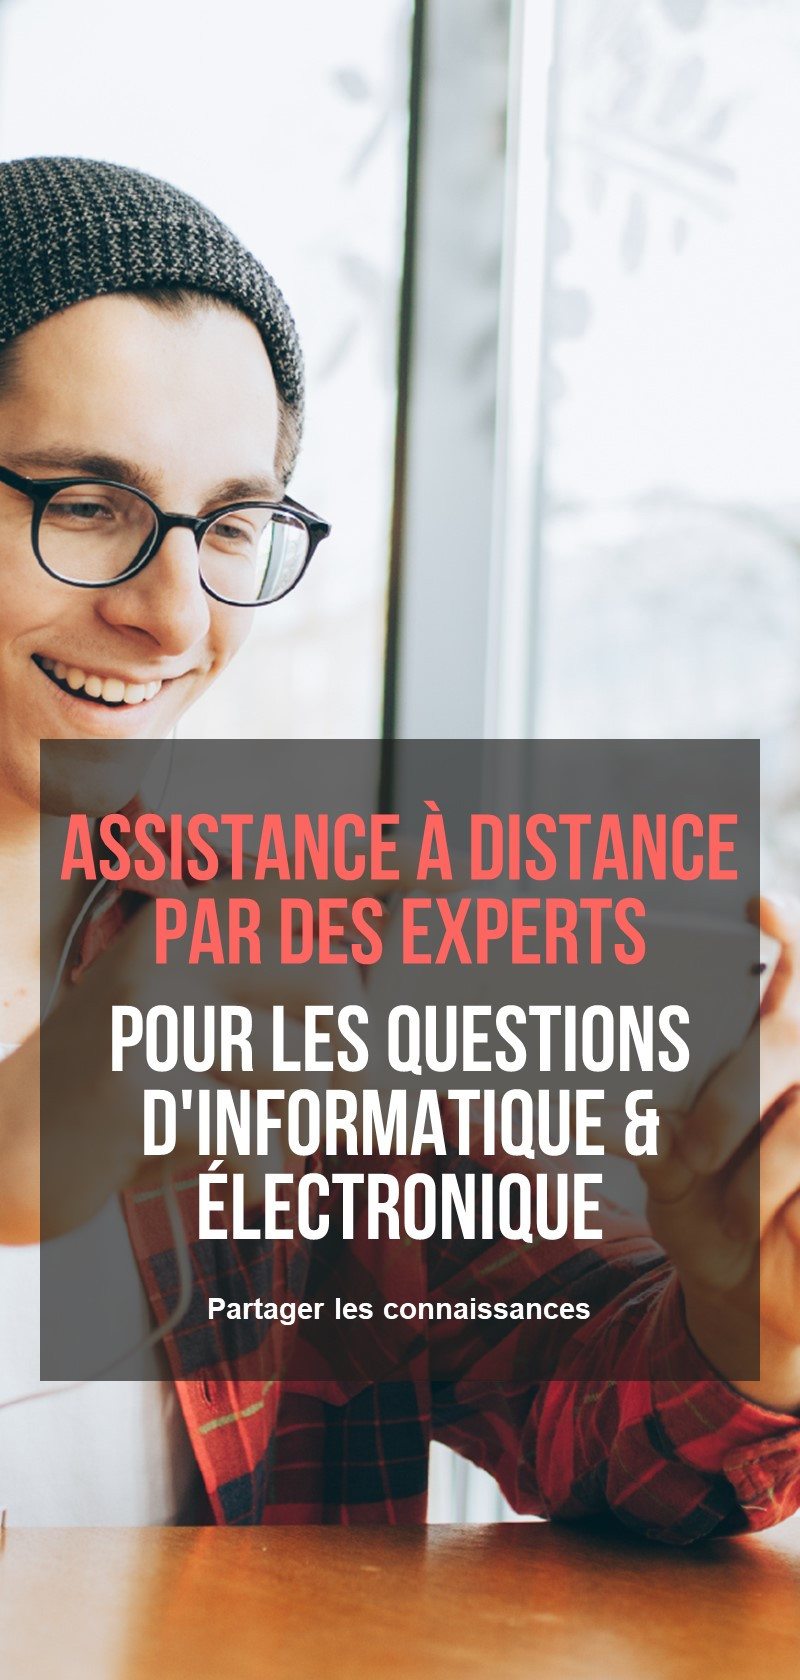 Assistance à distance par des experts en informatique et électronique